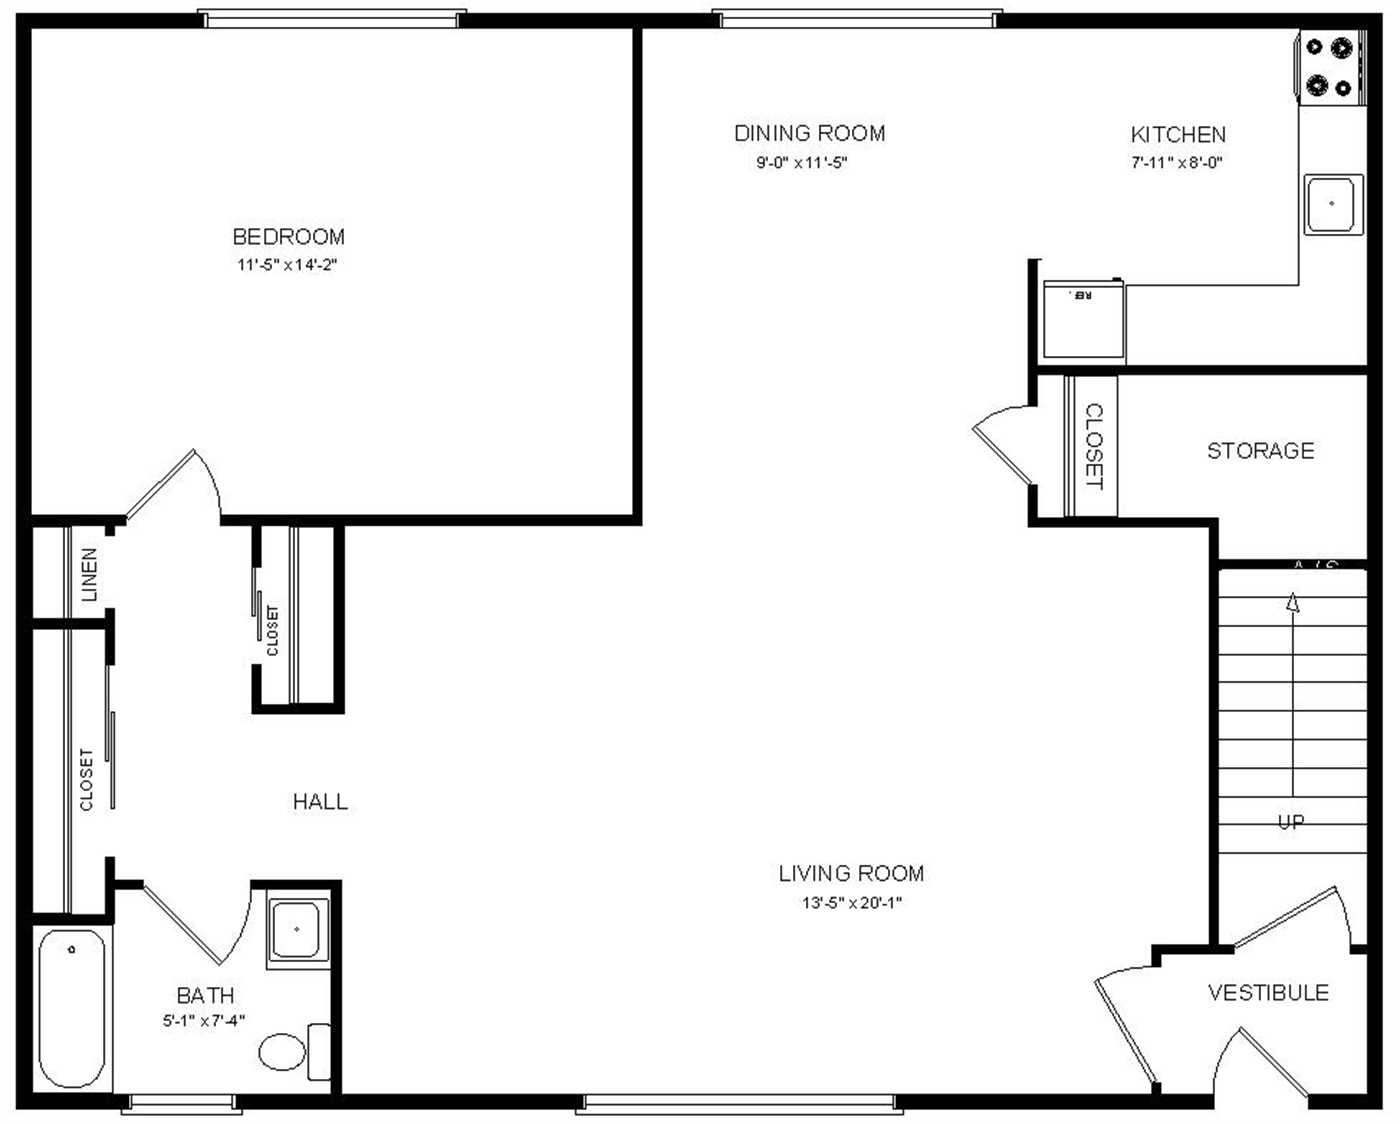 Printable floor plan templates pdf woodworking for Printable blueprints